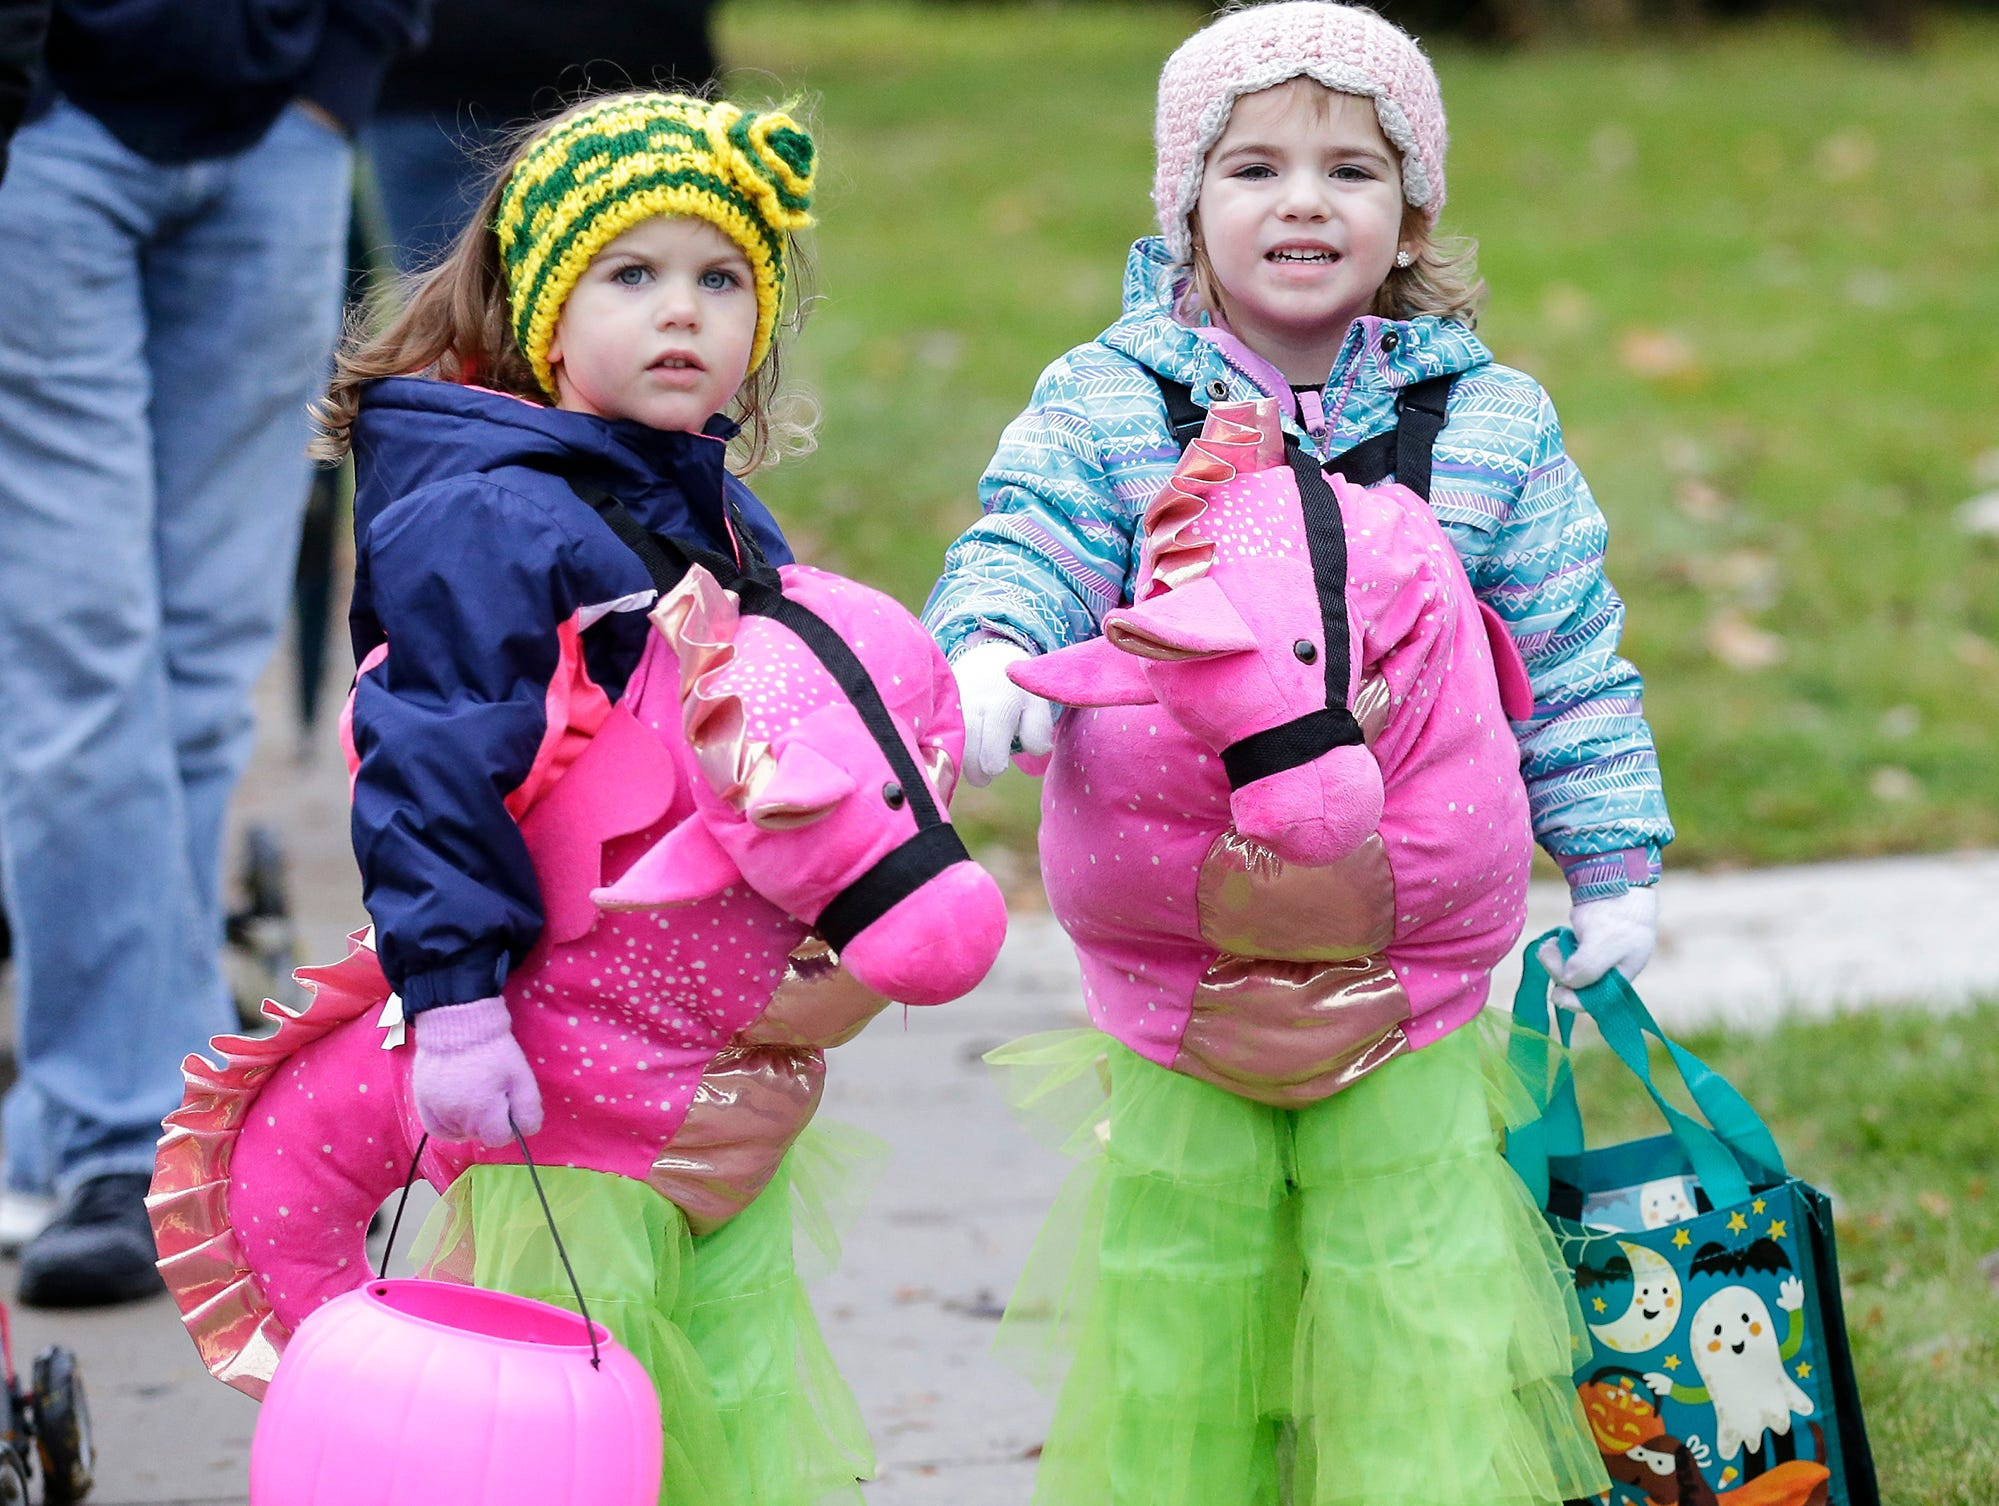 Cousins Olivis Weninger and Sydney Degroot of Fond du Lac were out trick or treating Sunday, October 28, 2018 in Fond du Lac, Wisconsin. Doug Raflik/USA TODAY NETWORK-Wisconsin